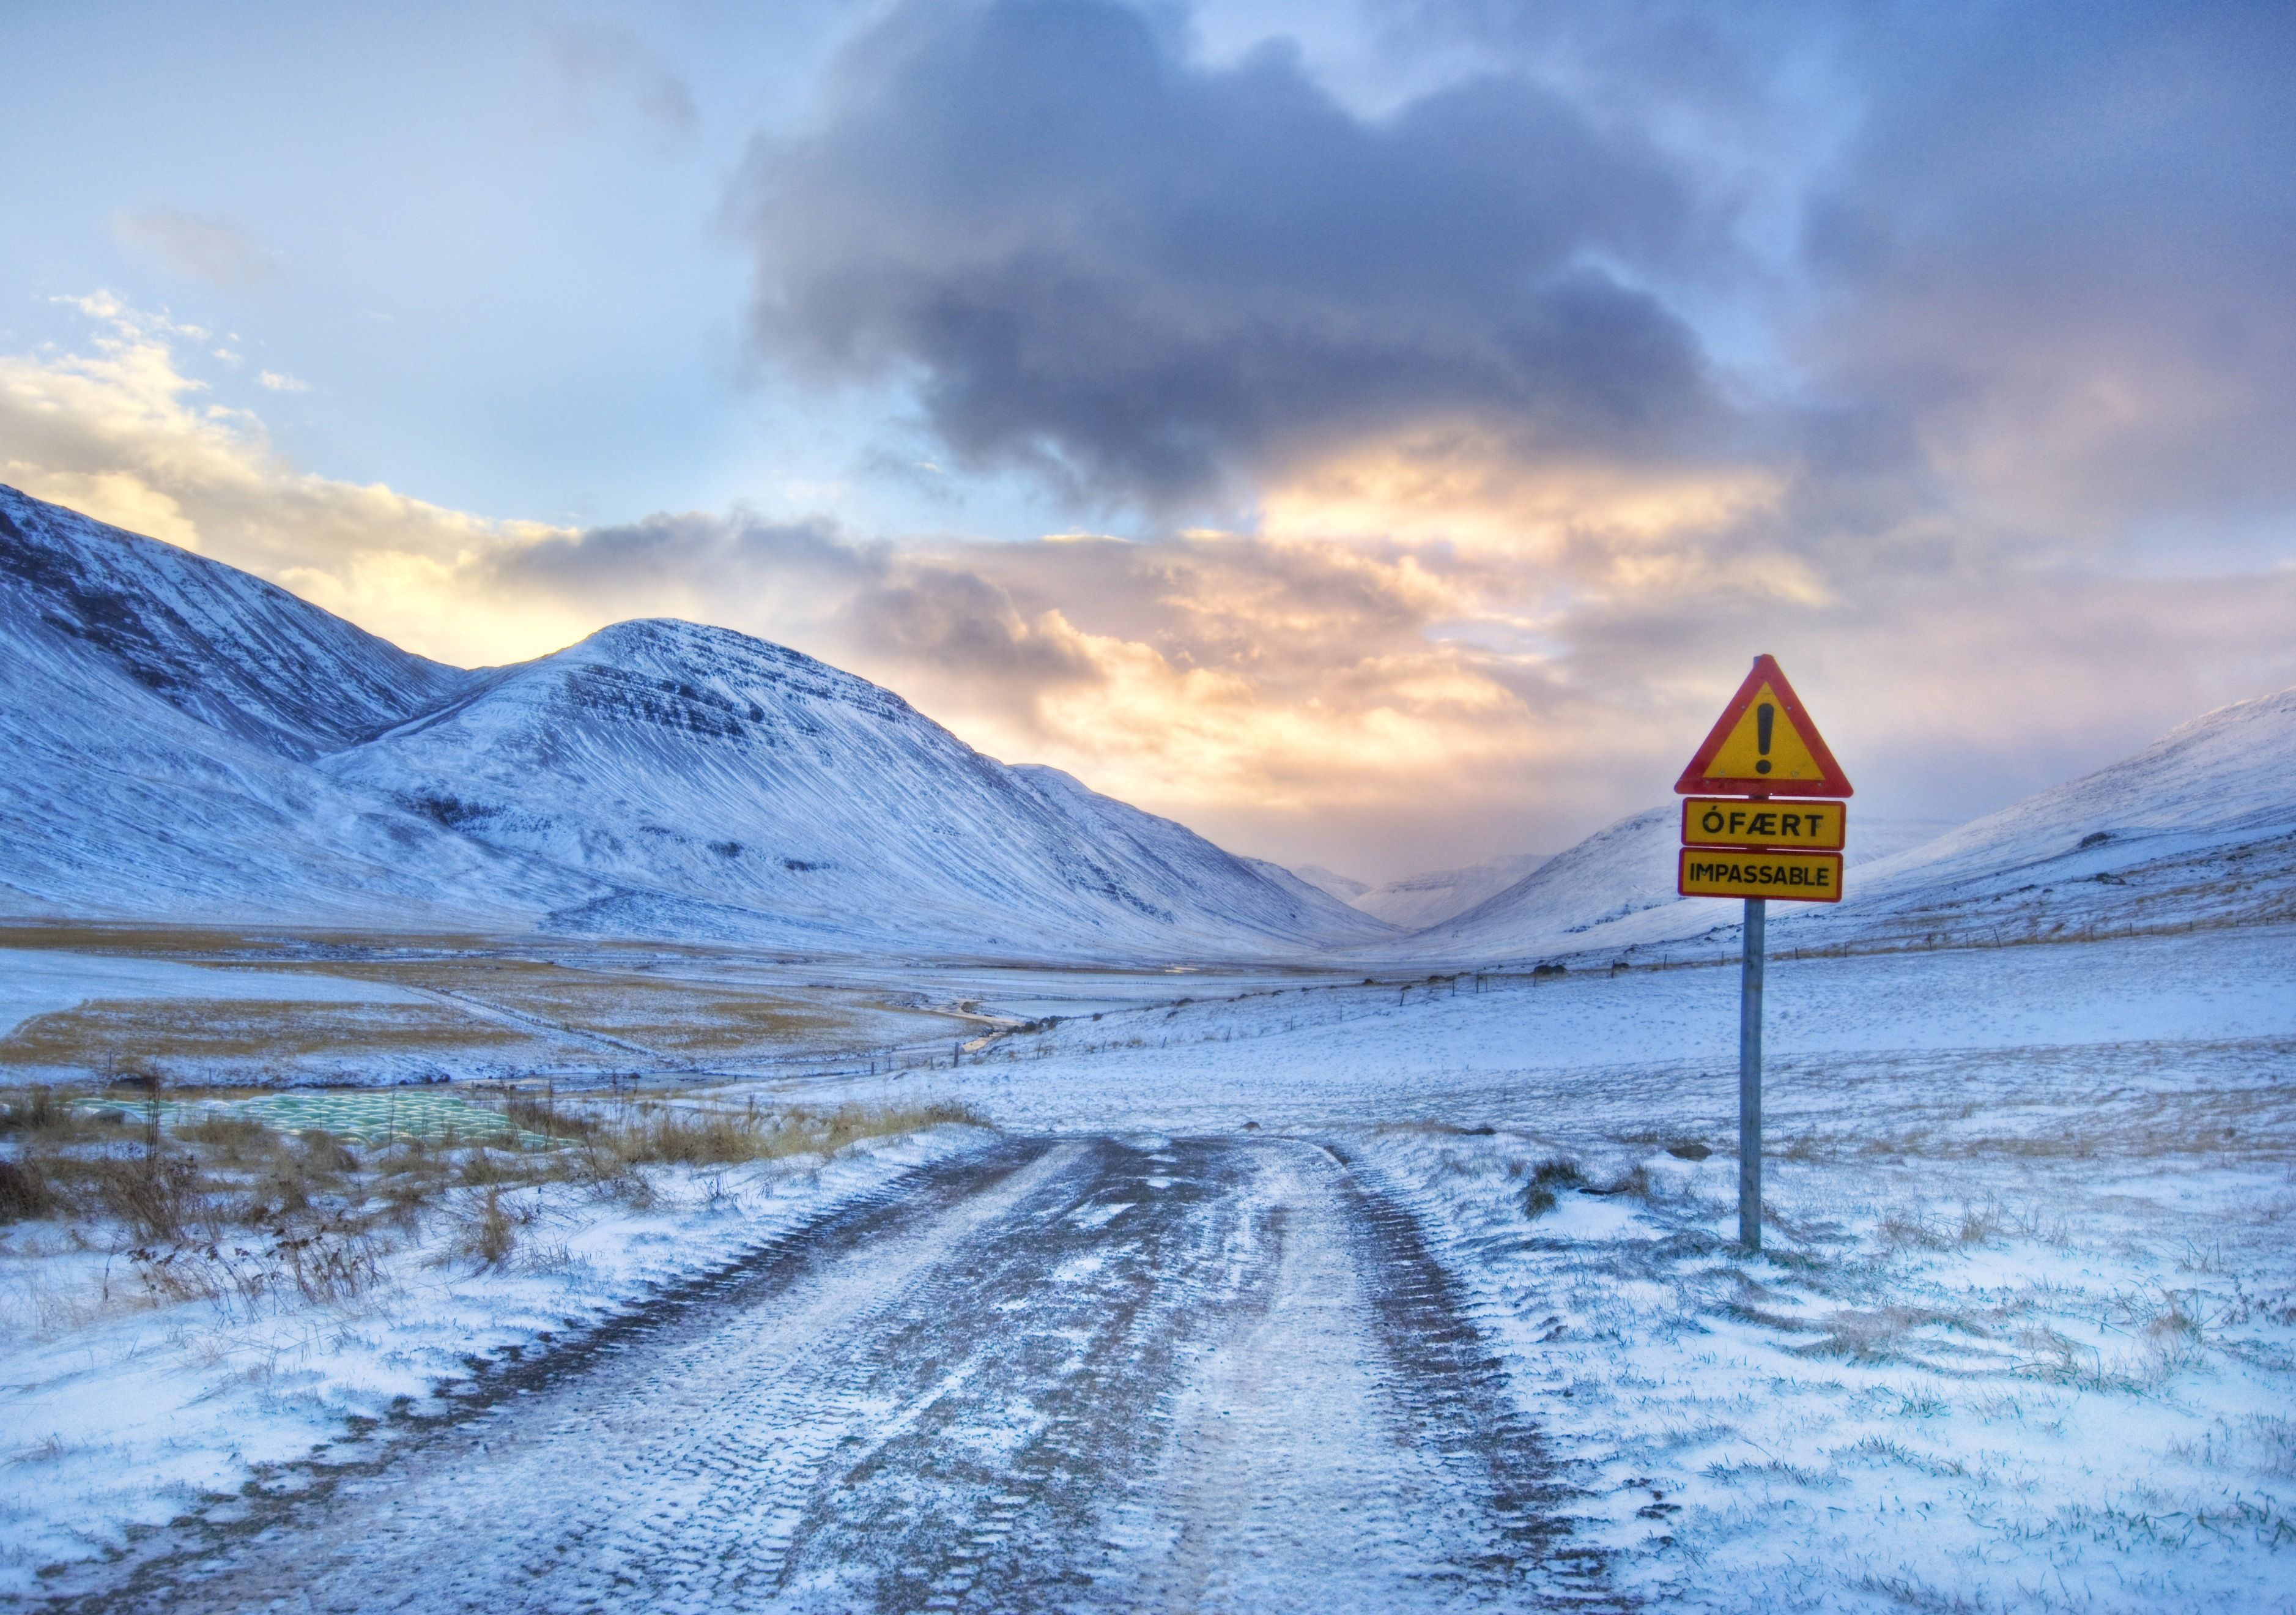 Road Leading To The Mountain And The Exclamation Mark Hd Desktop Wallpapers Pc Backgrounds Free Pictures